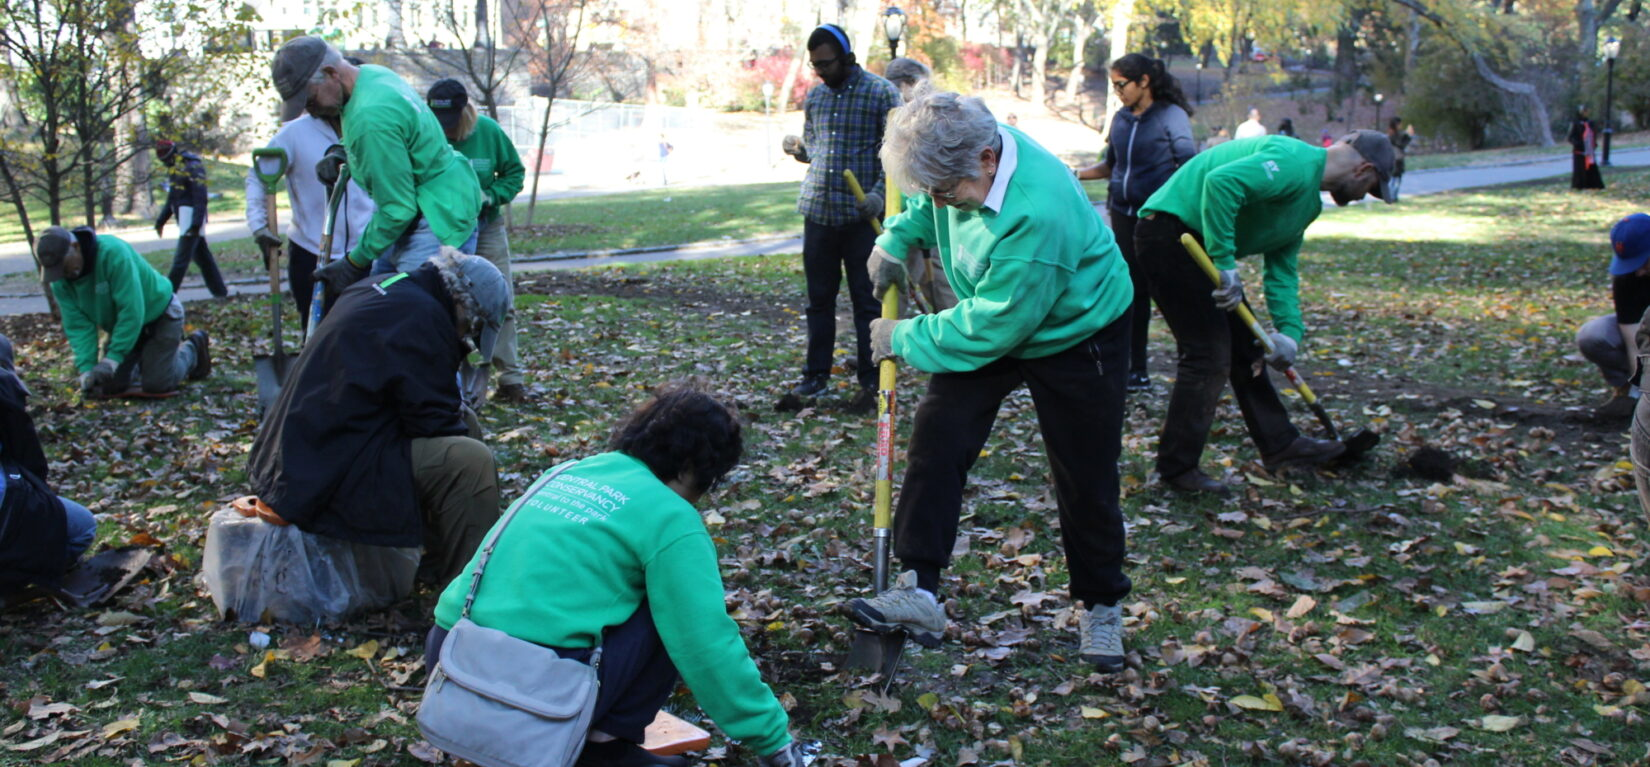 Volunteers digging into a Park landscape in autumn